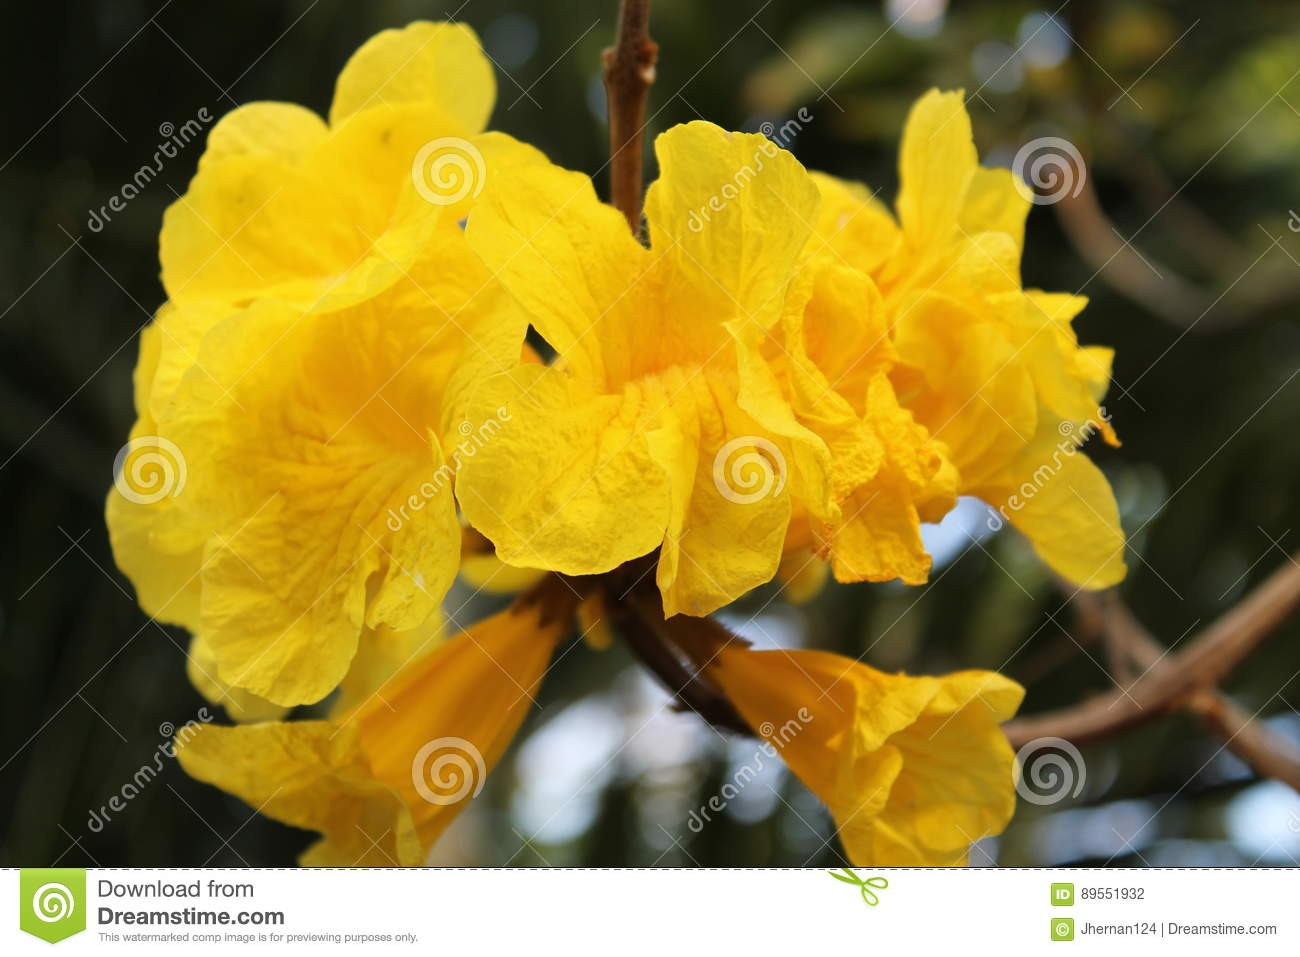 Yellow flowers stock photo image of miami flowering 89551932 bright yellow flowers dangling from a tree miami florida sunny day outdoors mightylinksfo